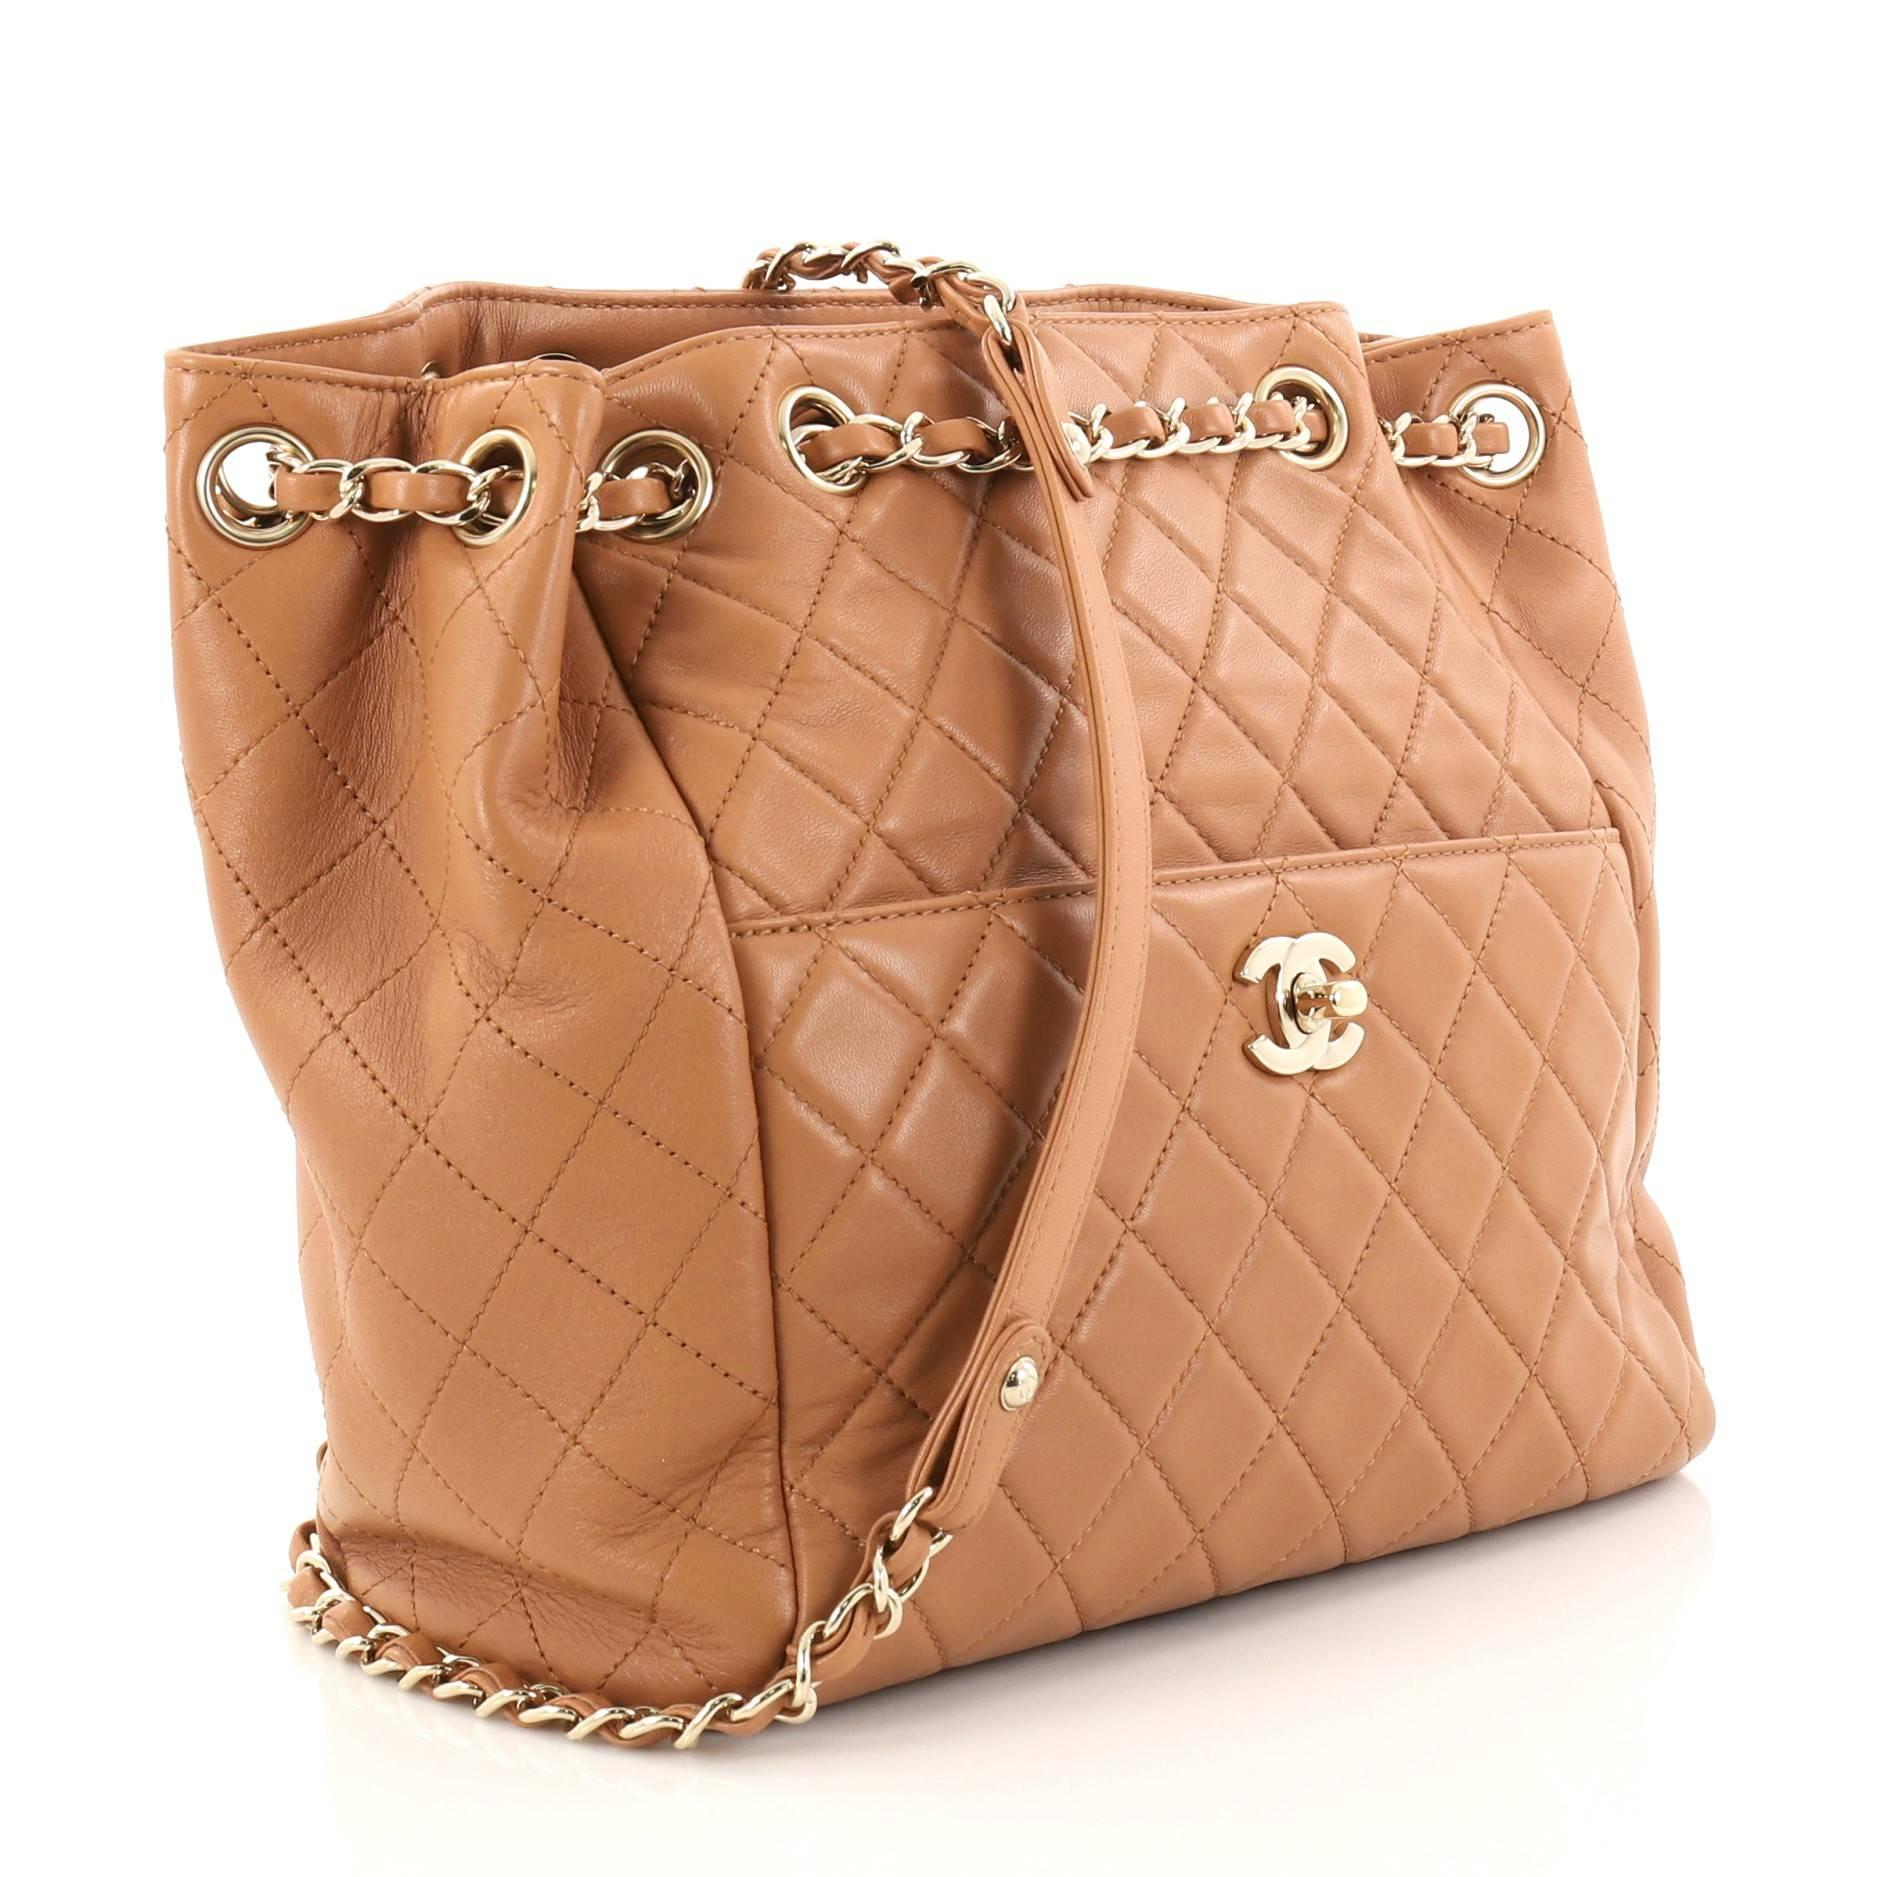 dcc3444224acd Chanel Drawstring CC Lock Quilted Lambskin Small Bucket Bag at 1stdibs